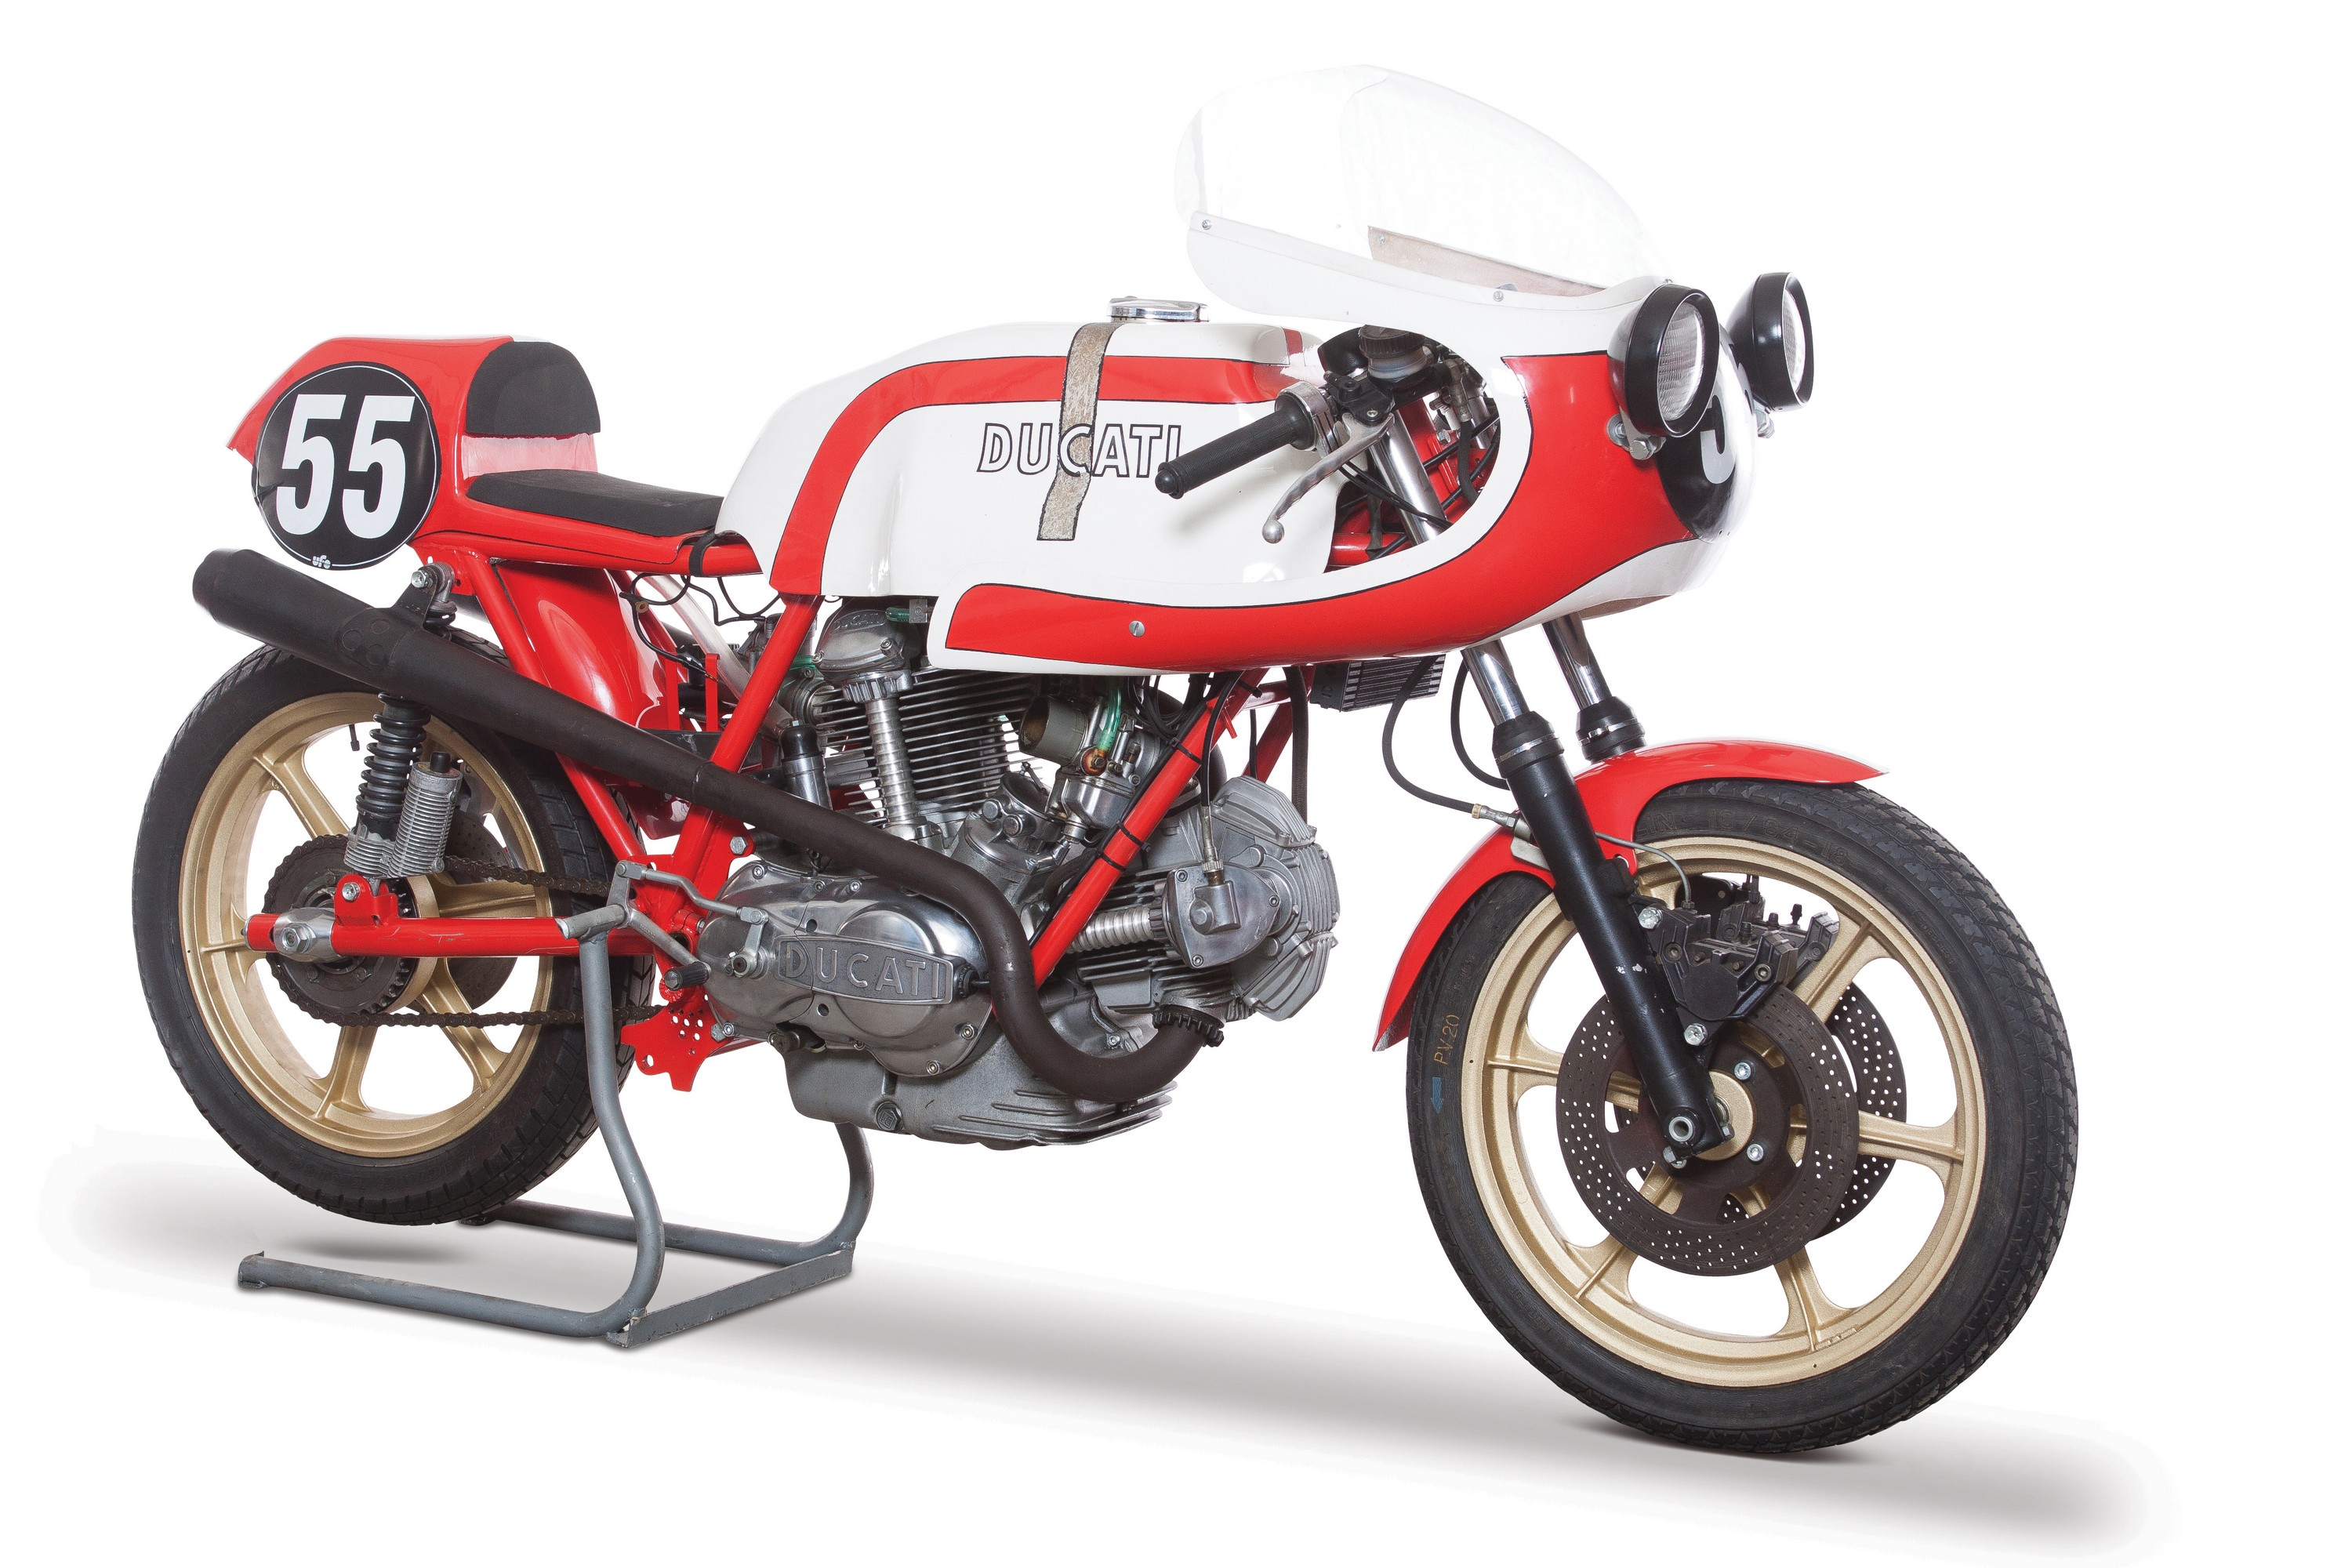 1975 ducati 750 ss corsa review top speed. Black Bedroom Furniture Sets. Home Design Ideas